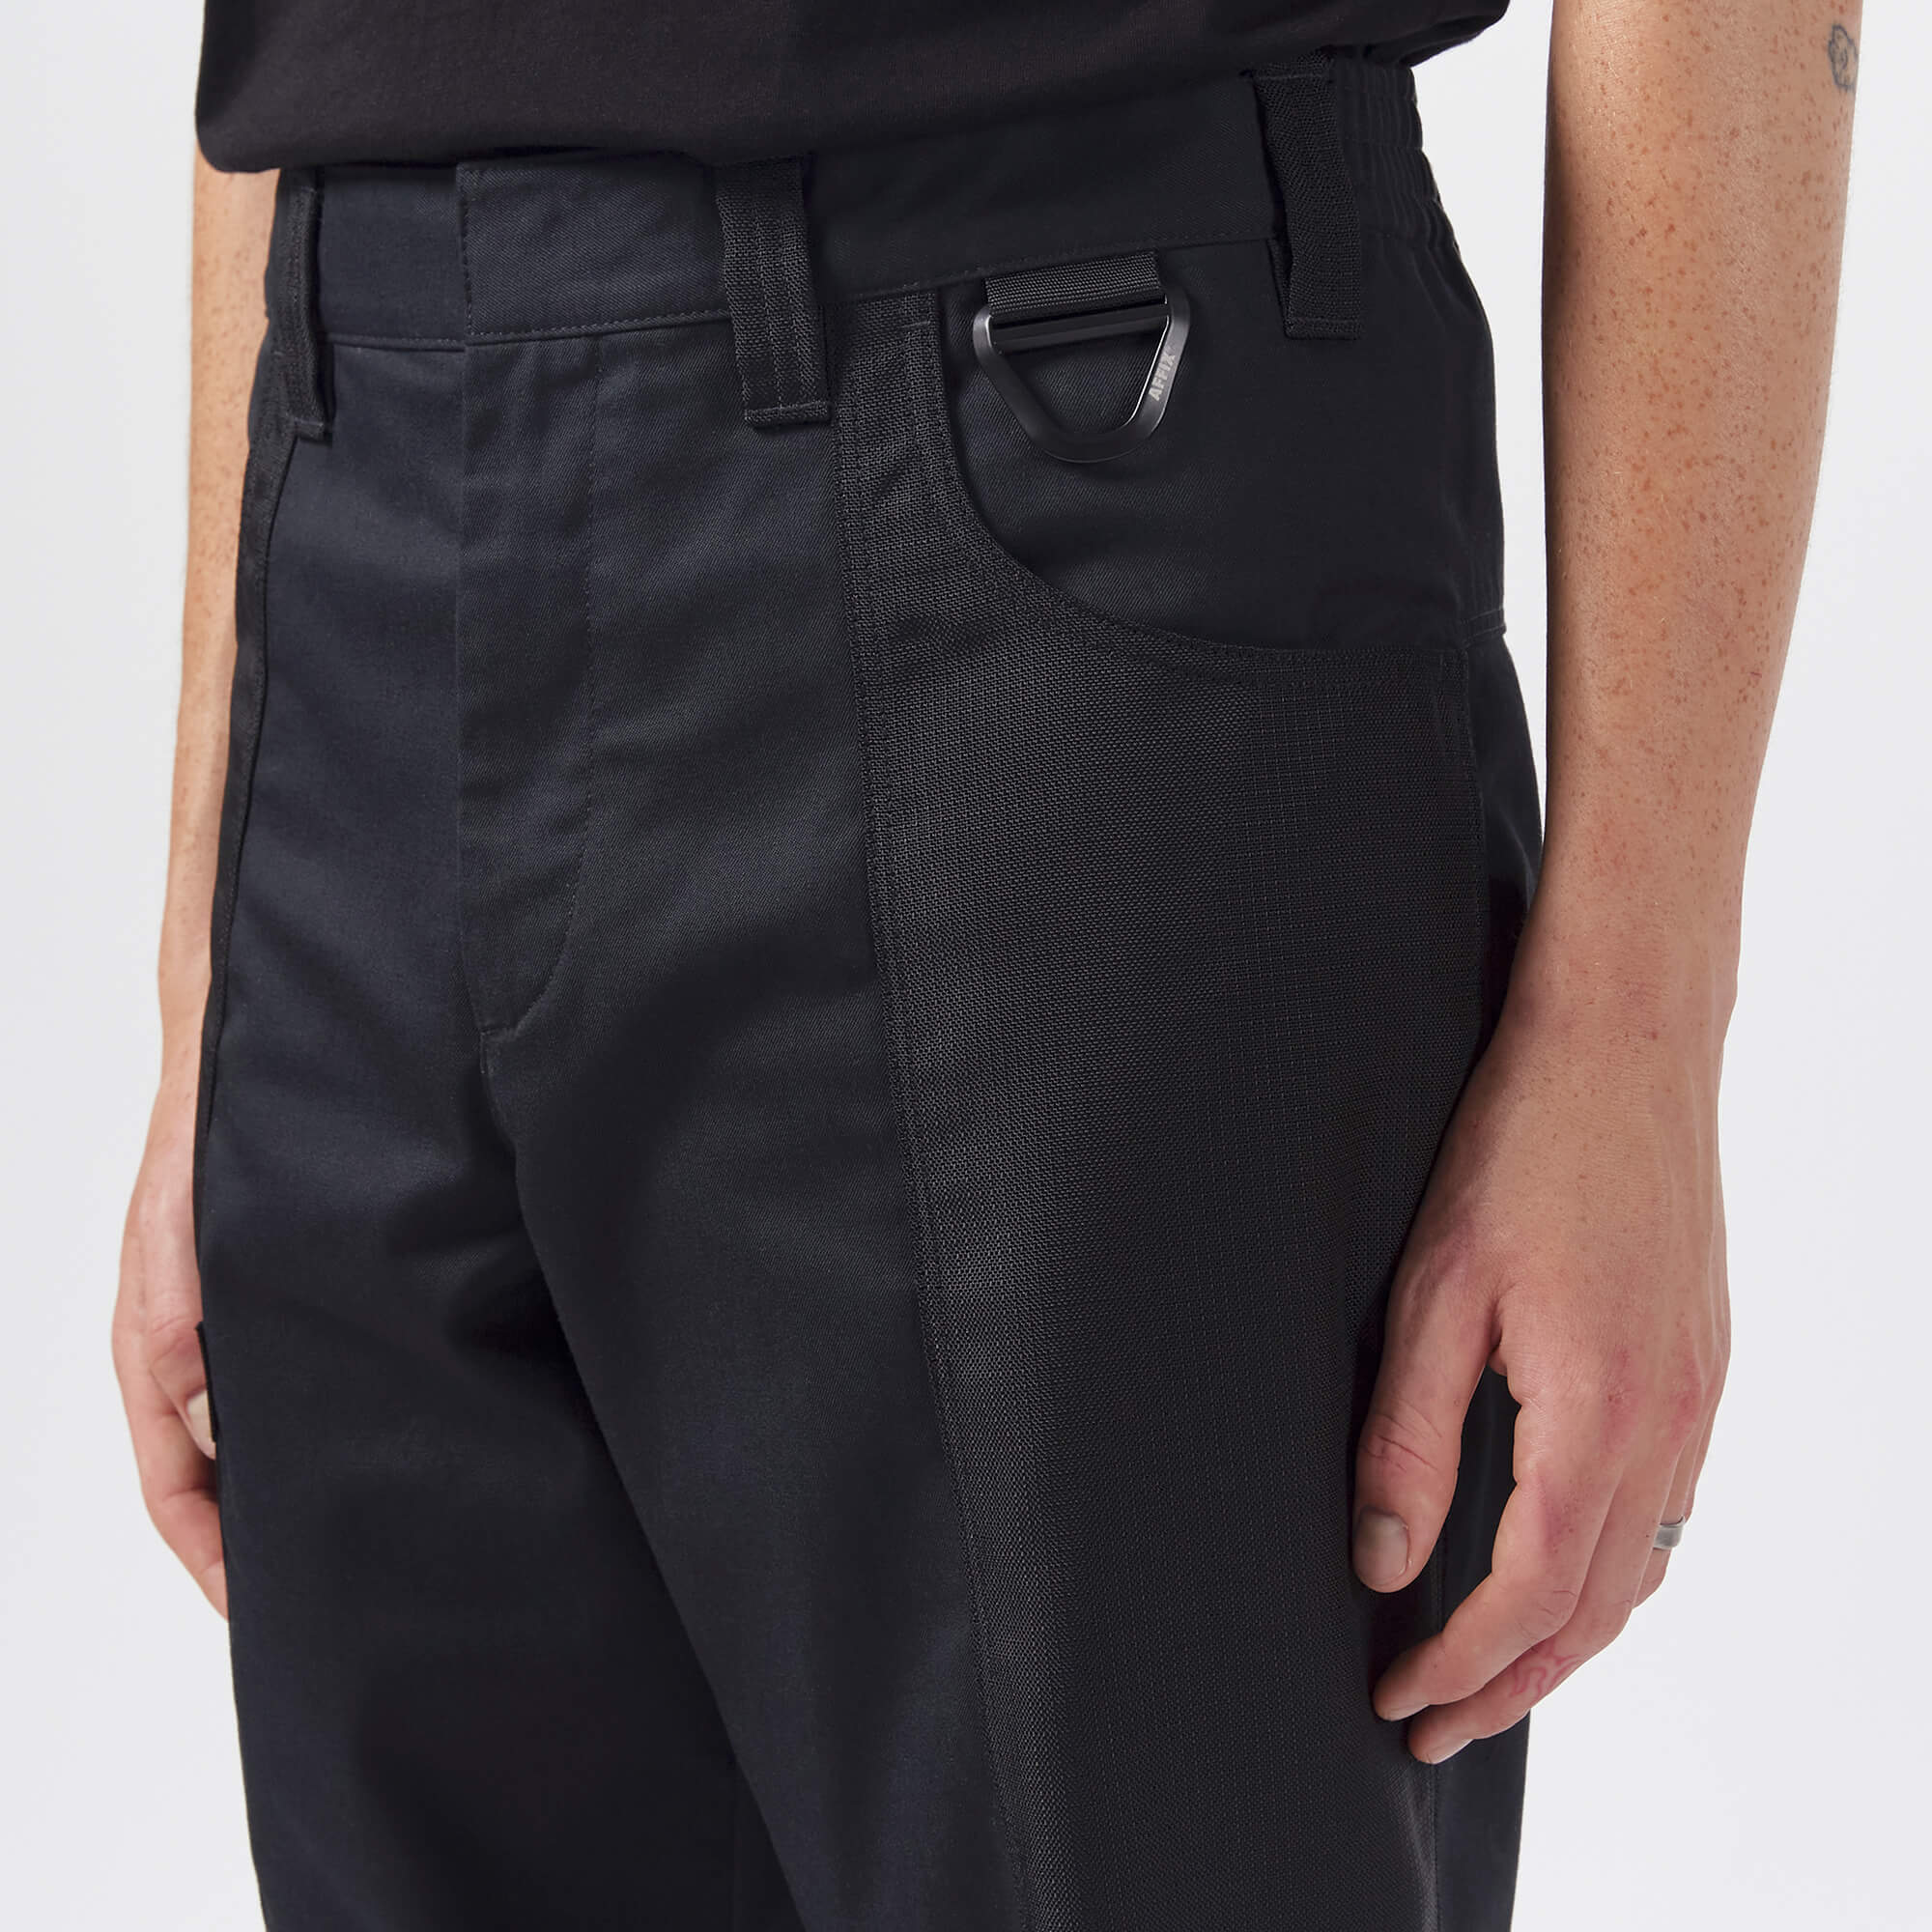 AFFIX WORKS AFFXWRKS DUO-TONE WORK PANT BLACK